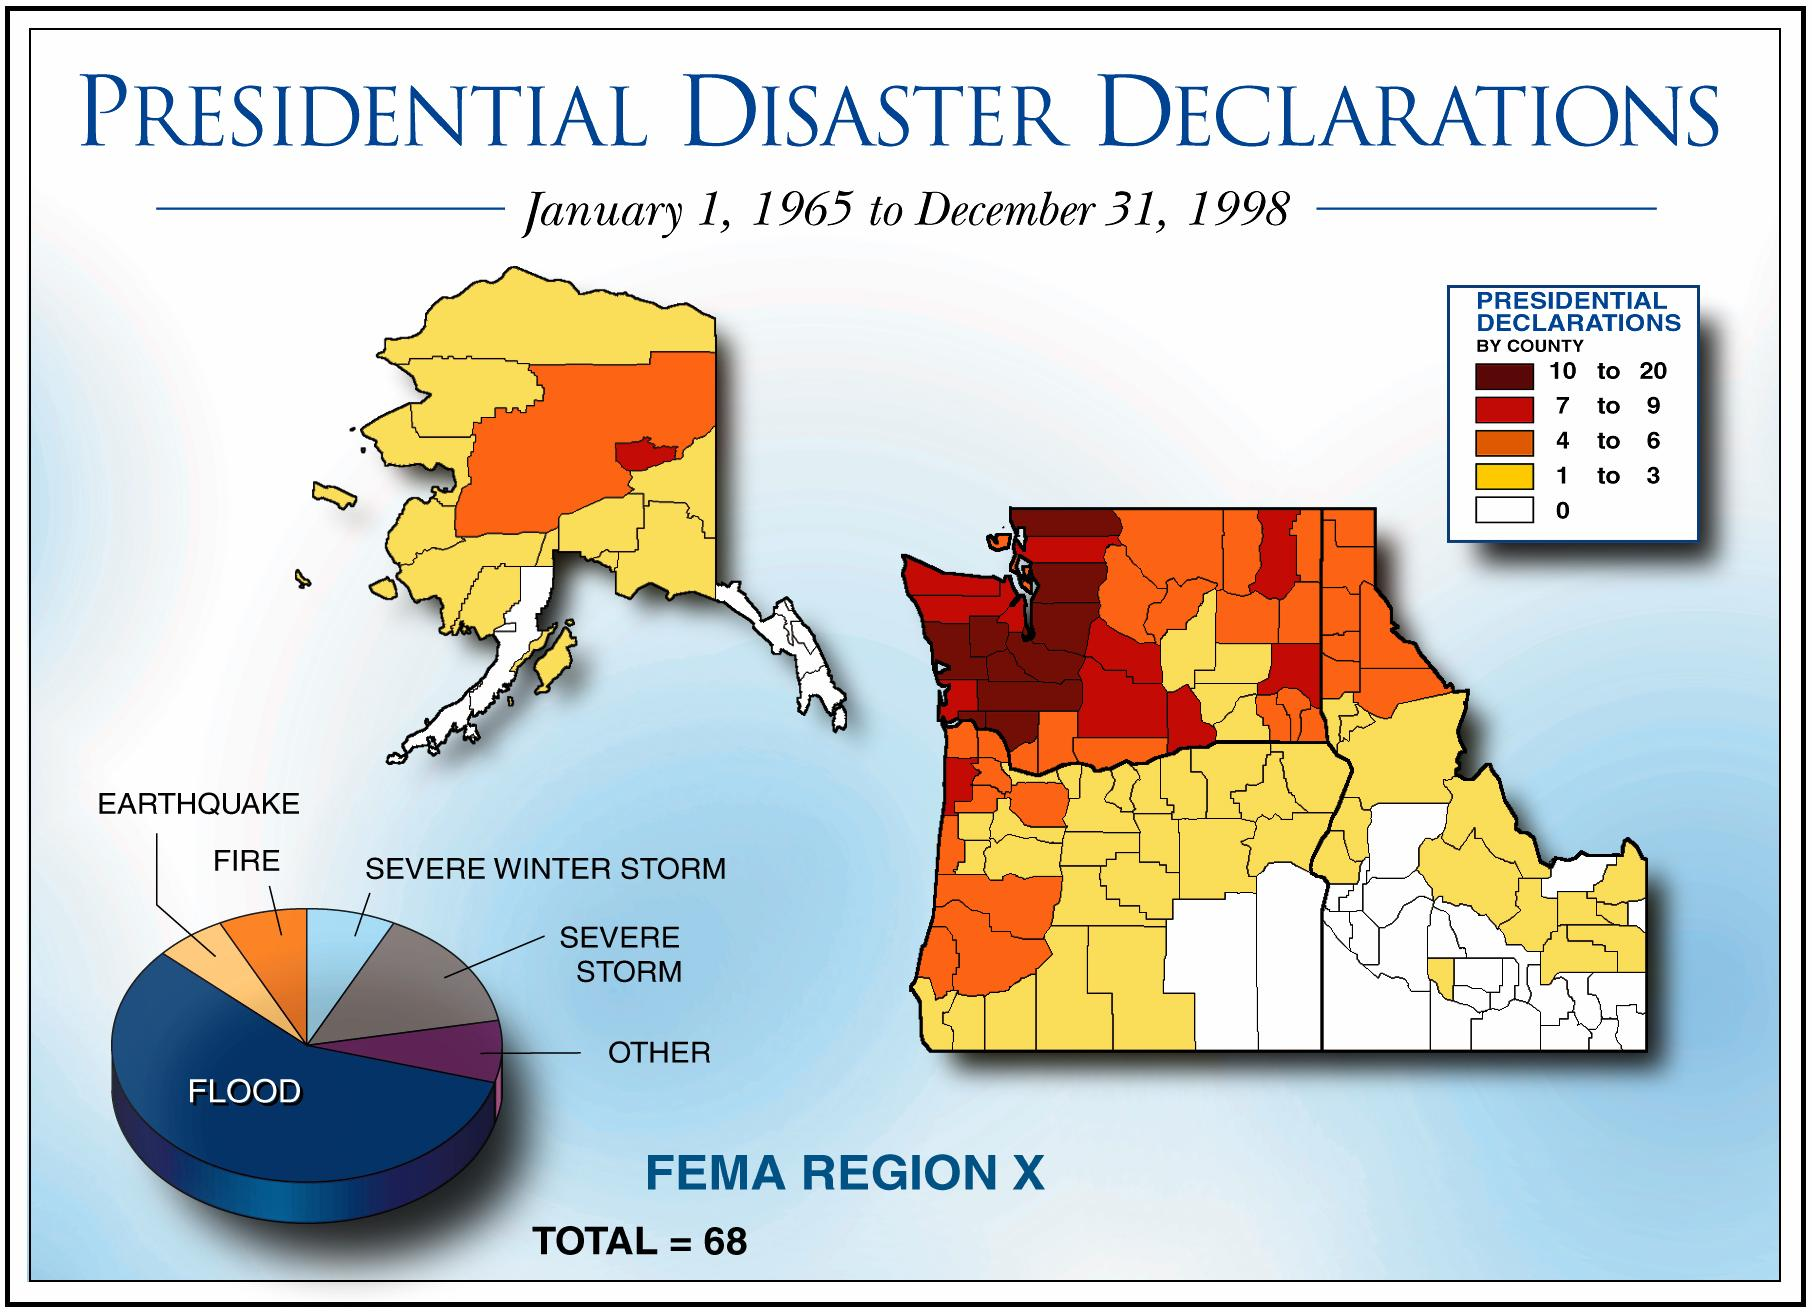 American Red Cross Maps And Graphics - Fema region map